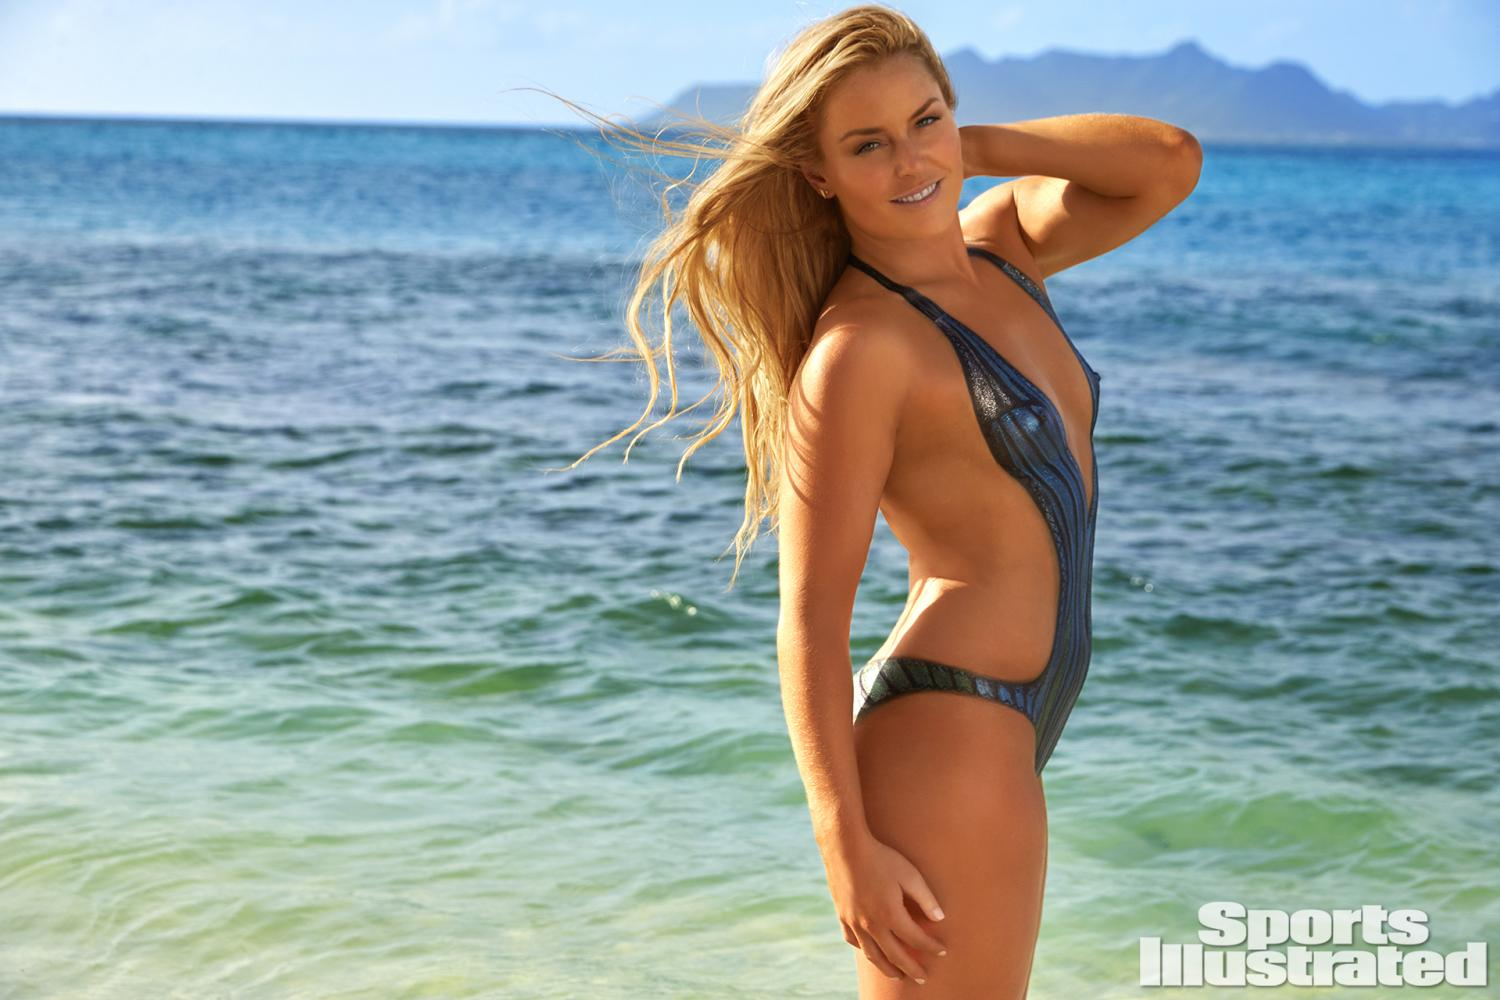 ... Vonn Swimsuit Body Paint Photos, Sports Illustrated Swimsuit 2016